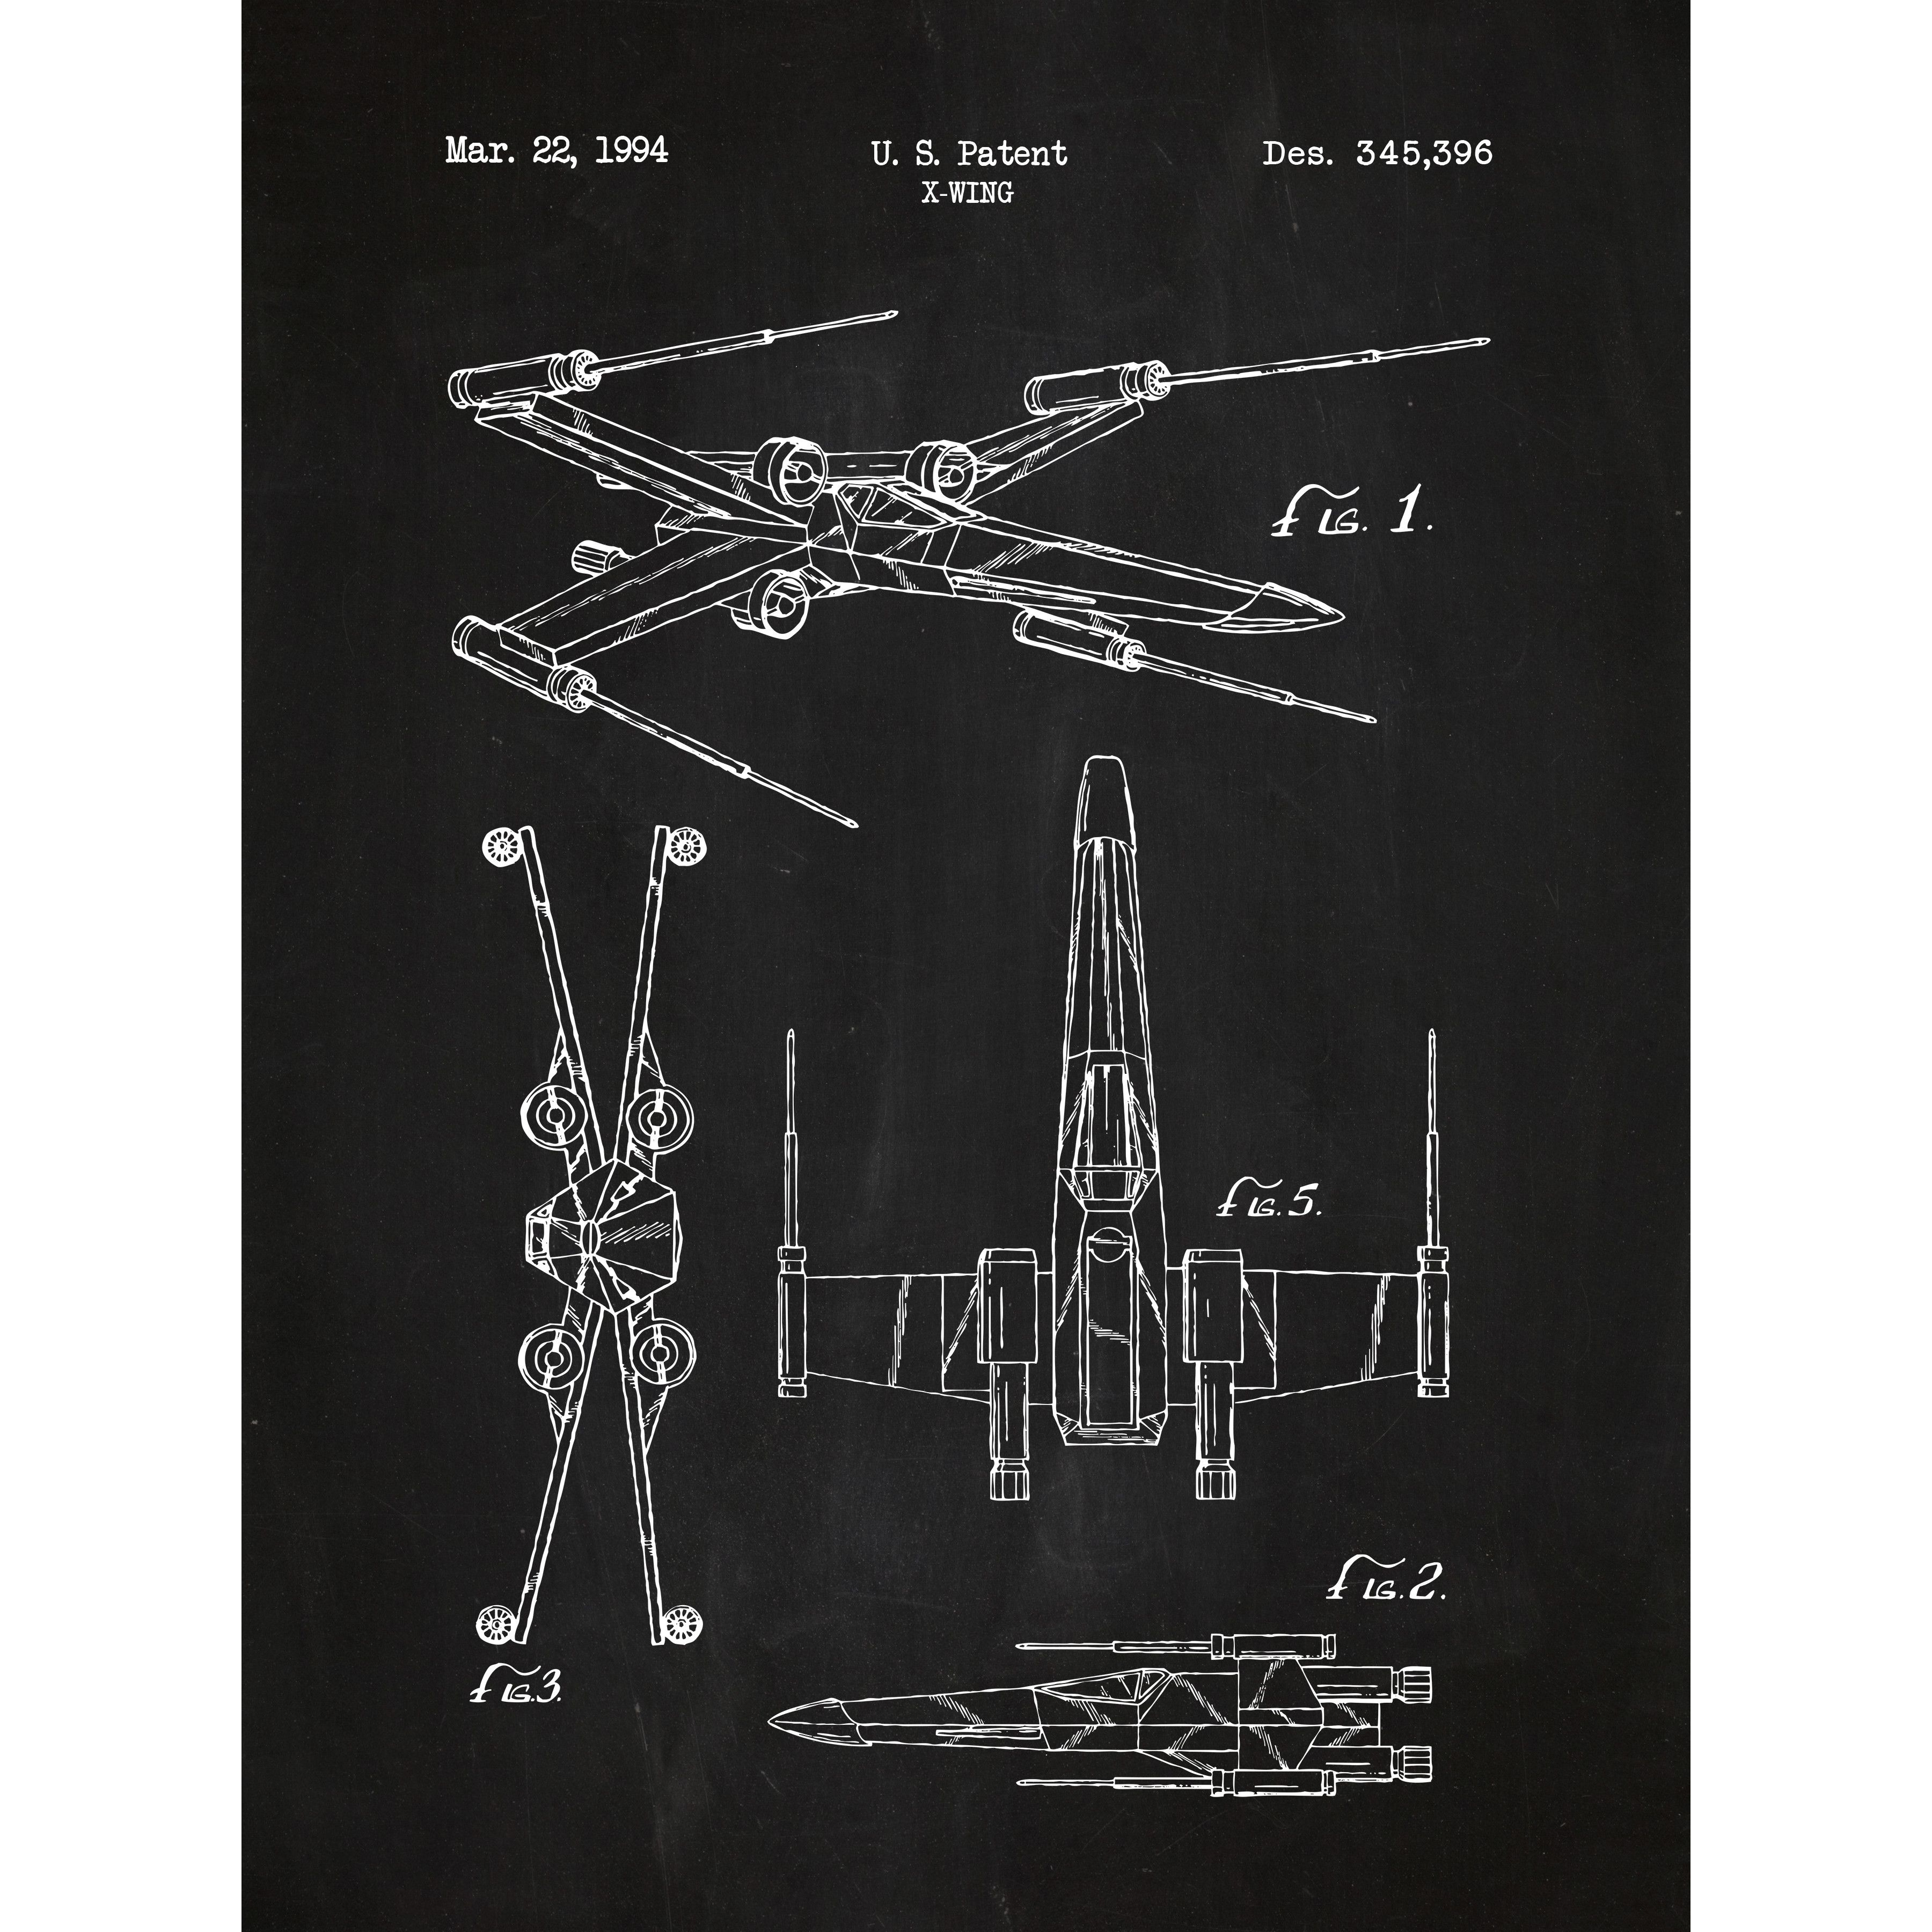 Star wars x wing 2 blueprint graphic art poster in chalkboard white star wars x wing 2 blueprint graphic art malvernweather Image collections